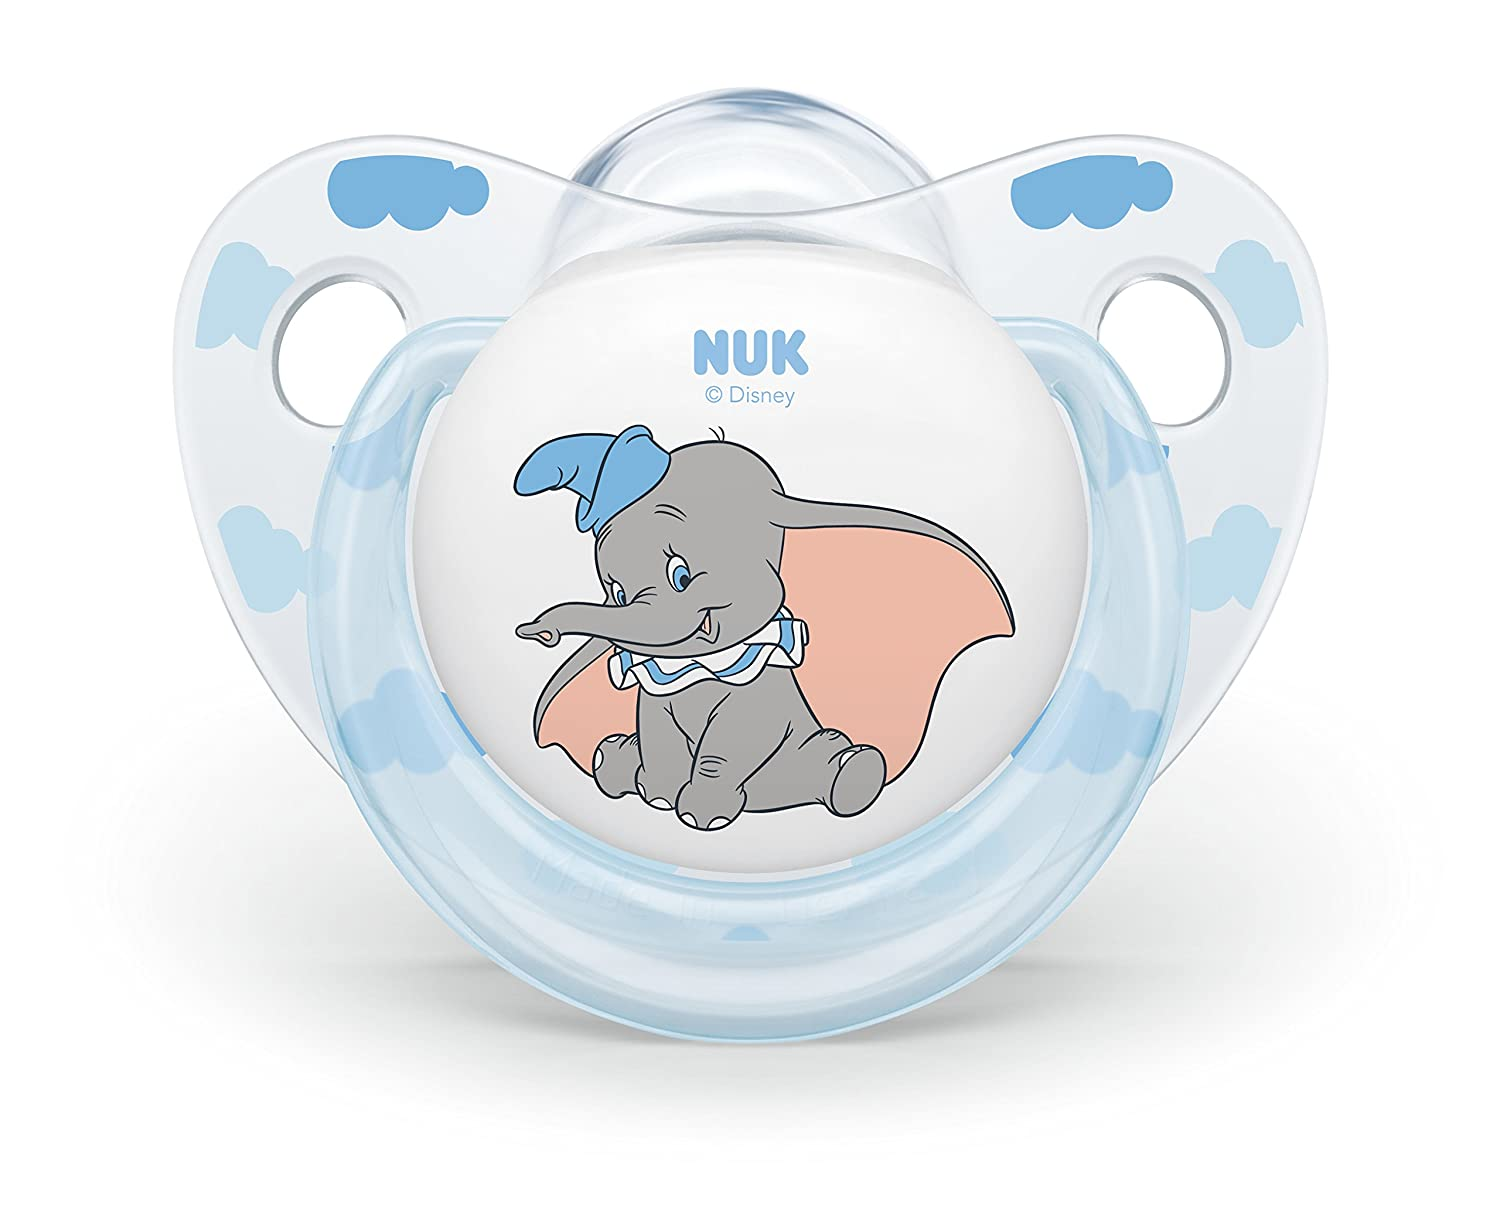 Amazon.com : NUK Disney Baby Dumbo Soother Silicone ...